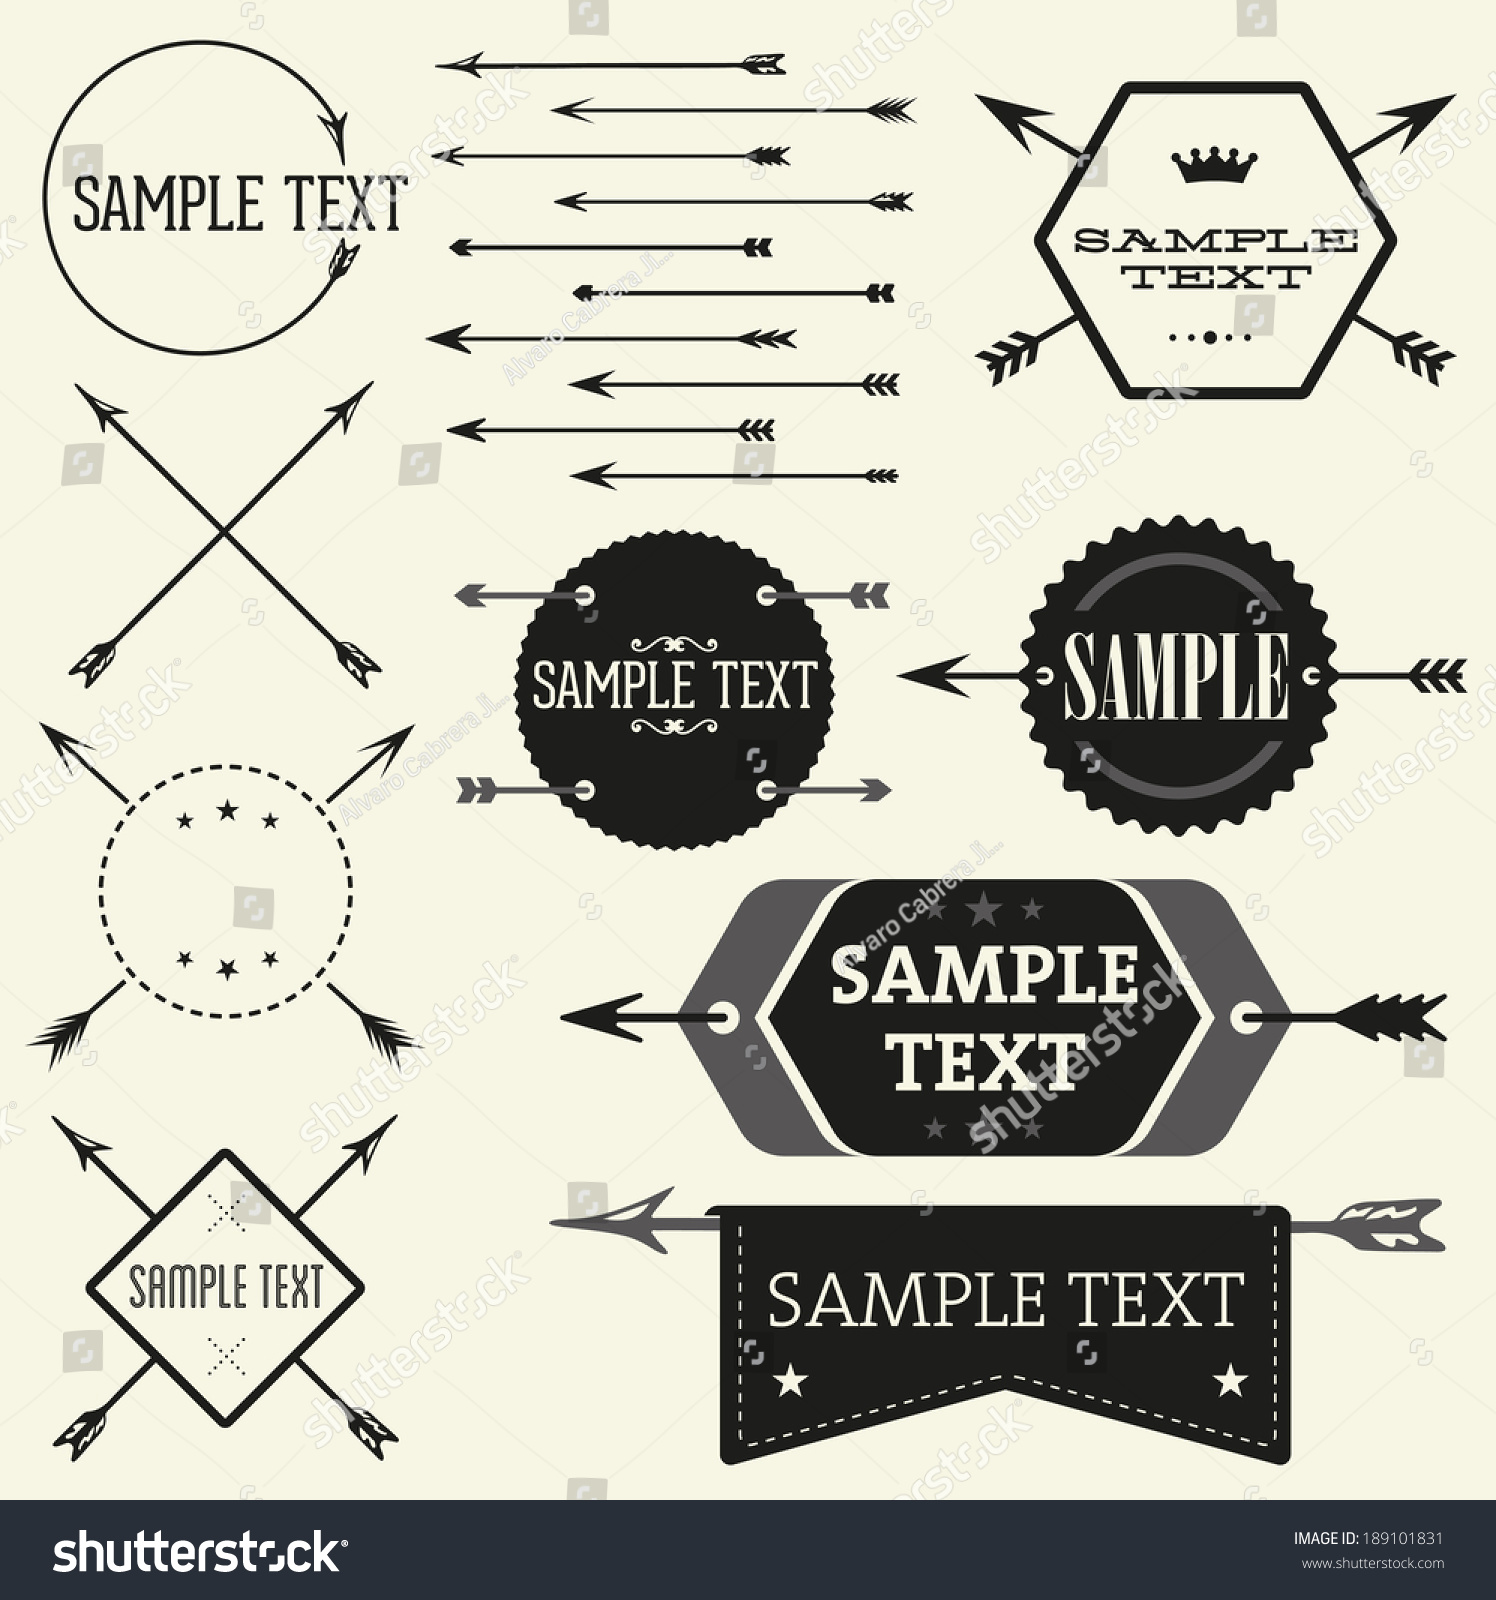 z label templates - vector vintage badge label templates great stock vector